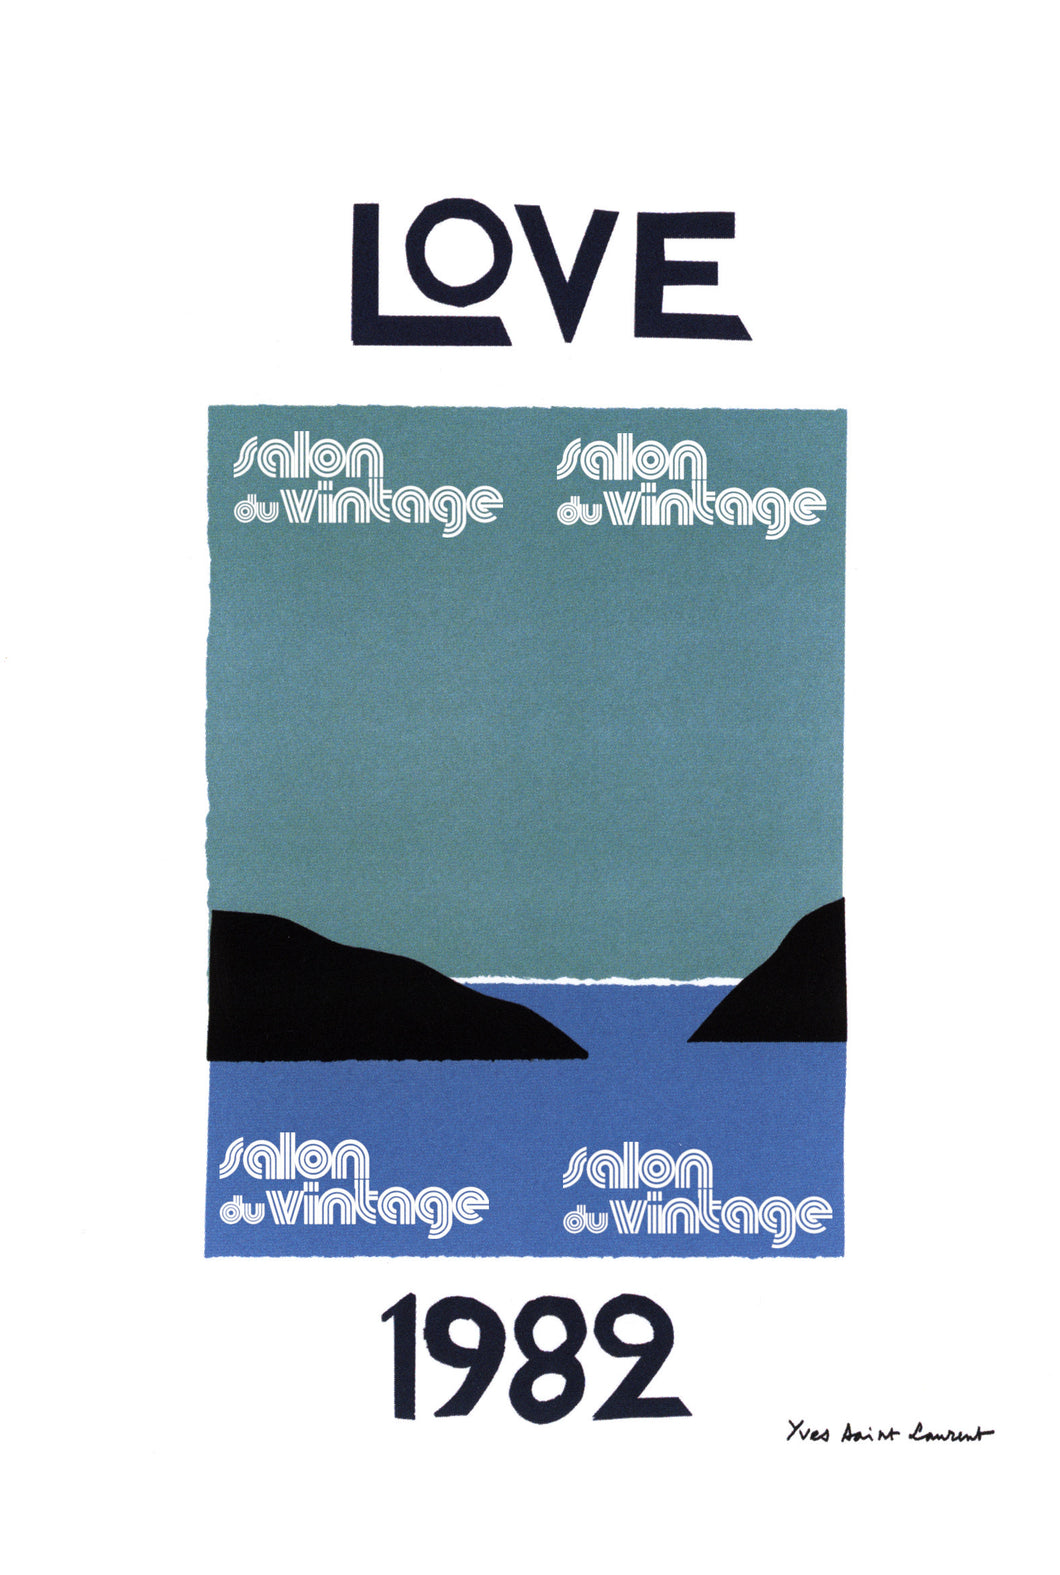 AFFICHE LOVE YVES SAINT LAURENT 1982